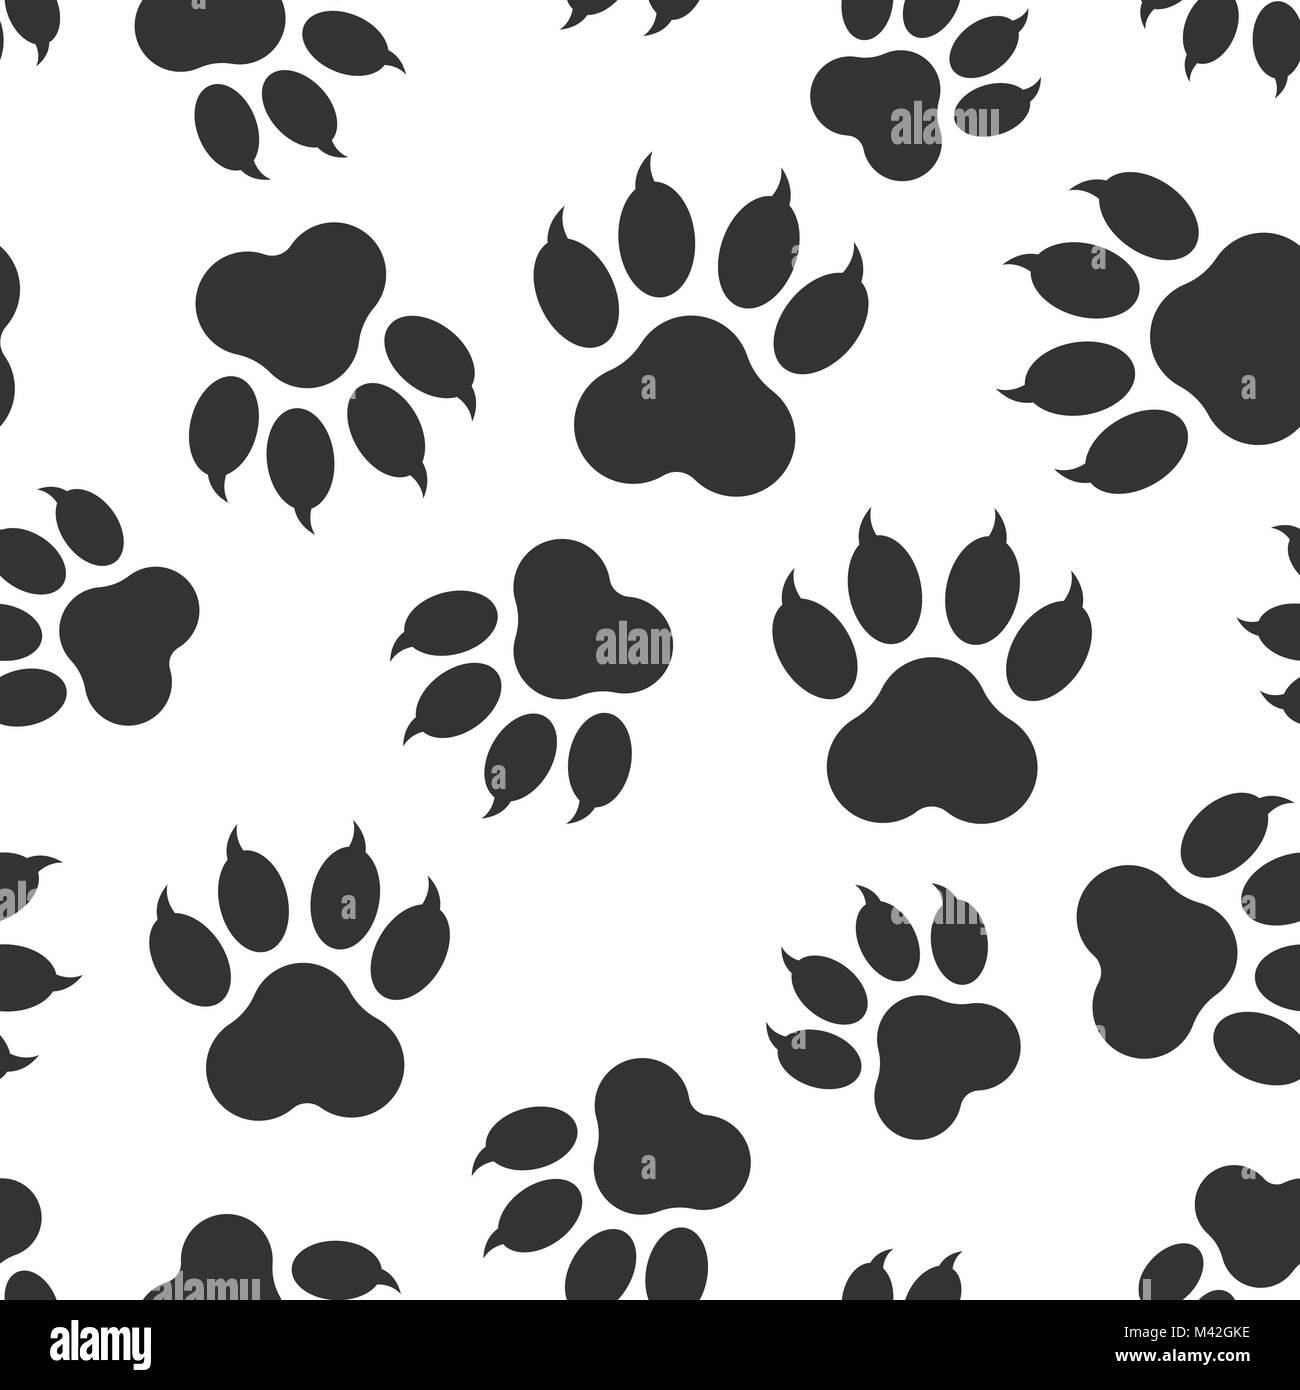 Paw Print Icon Seamless Pattern Background Business Flat Vector